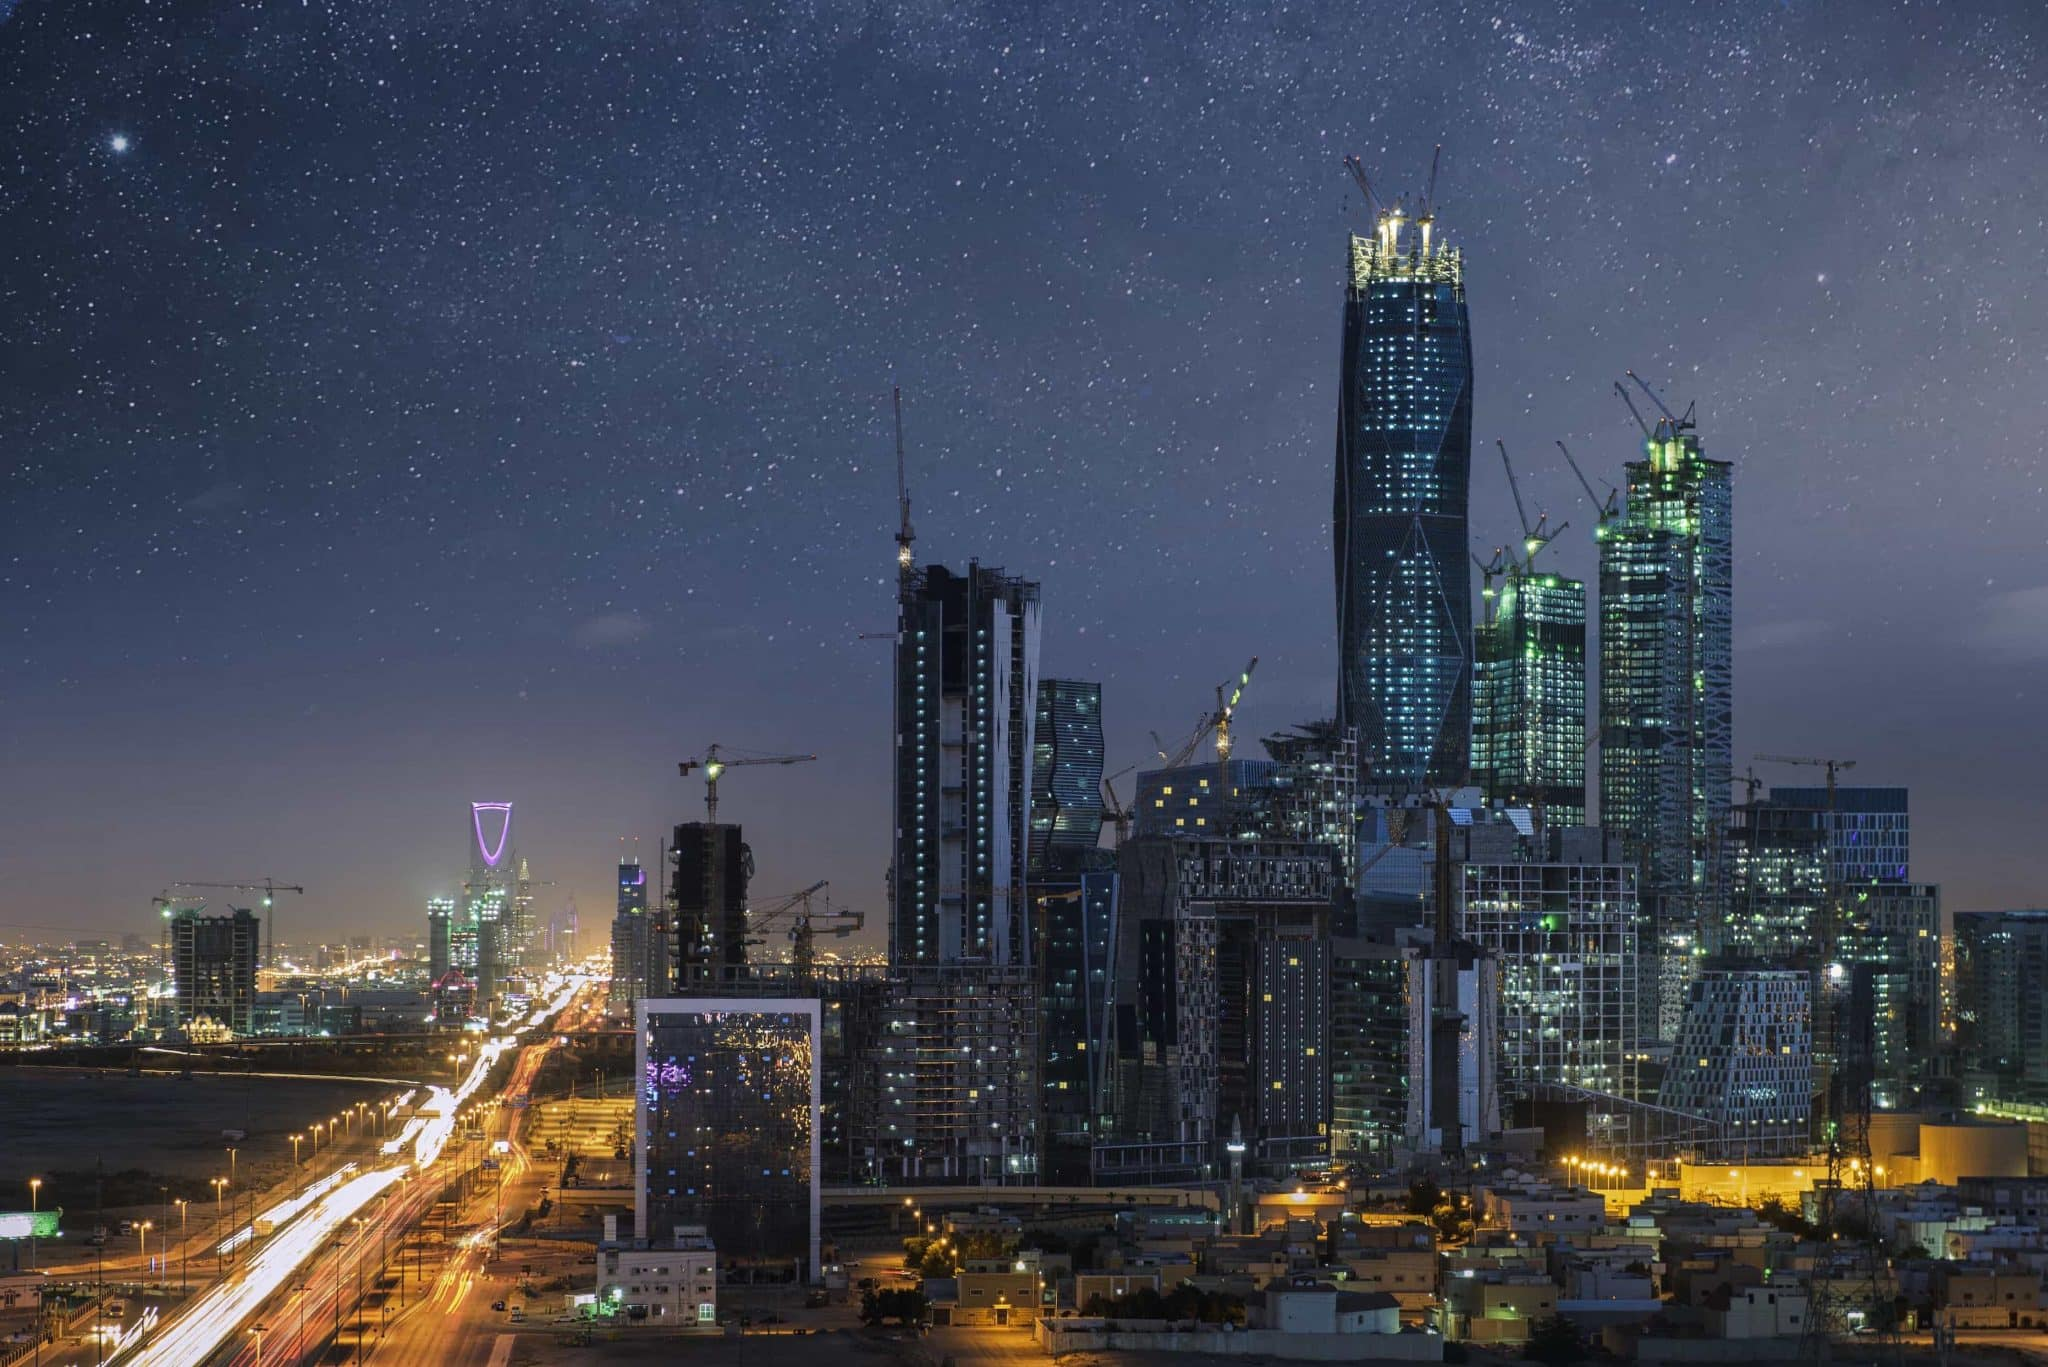 FinTech Tour 2019 was a massive boost to the FinTech sector in GCC